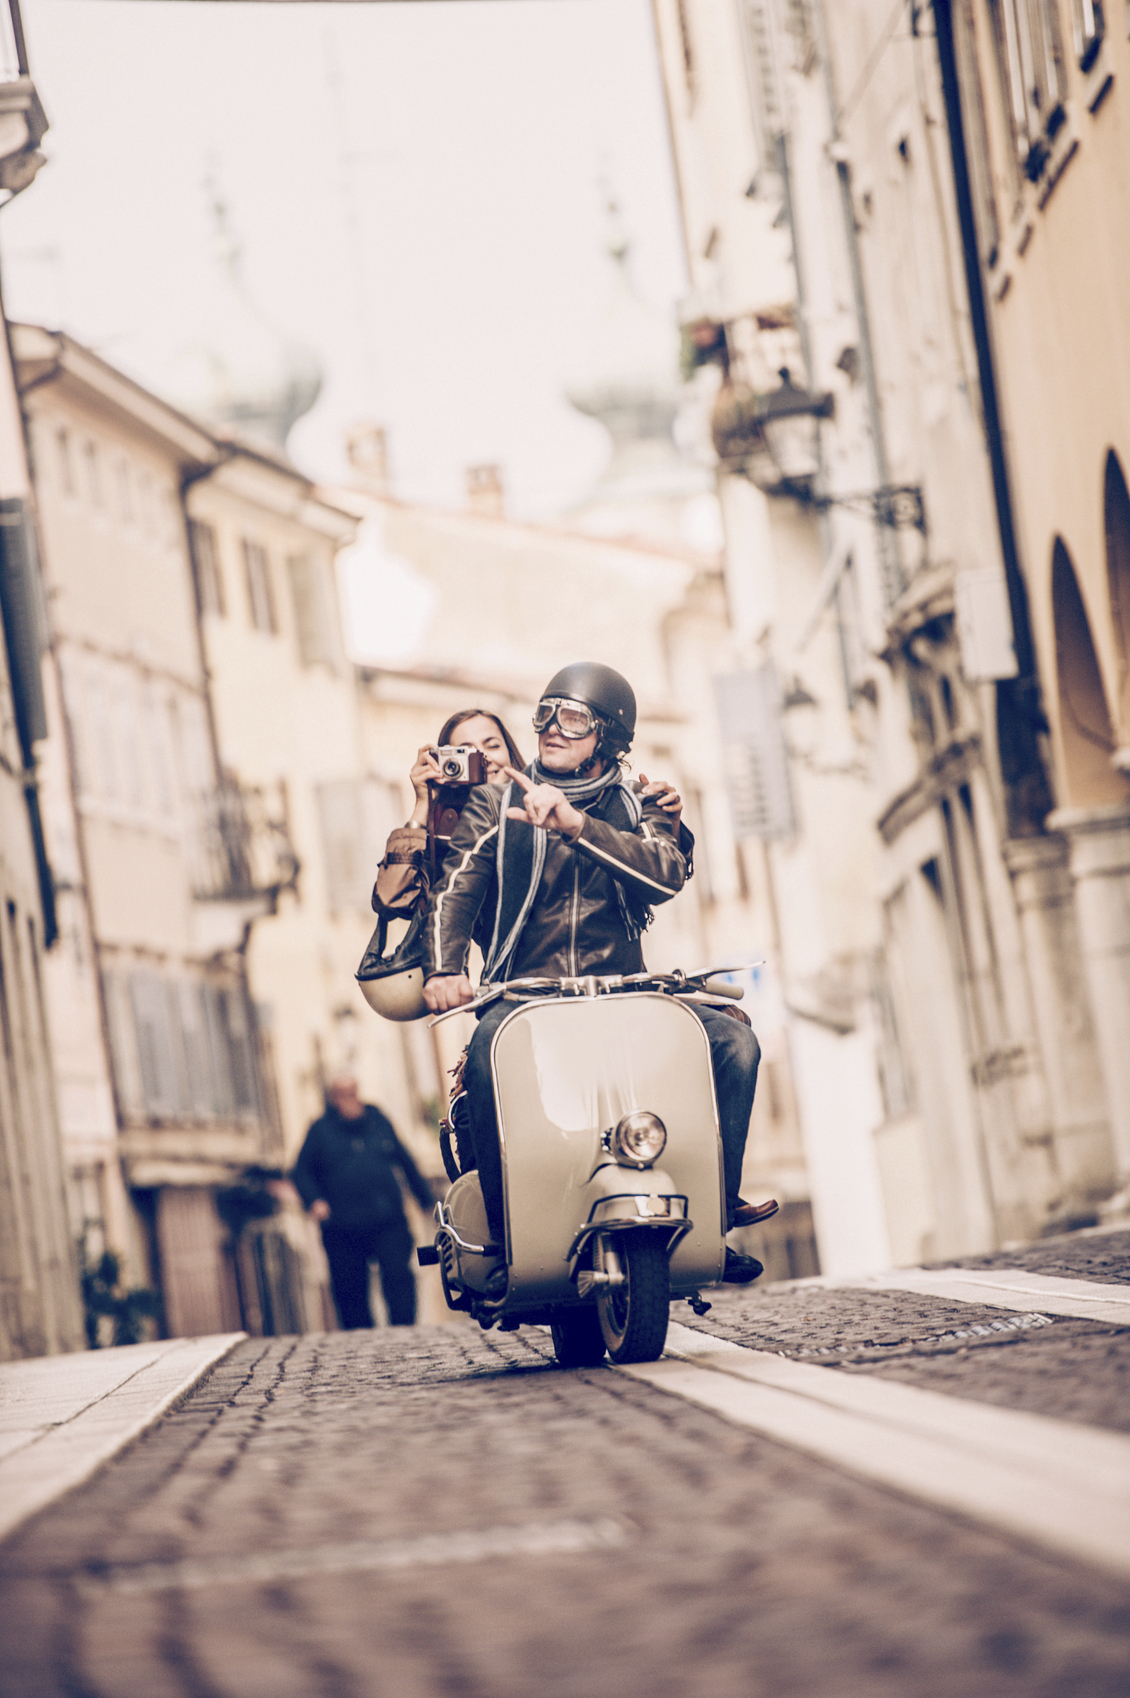 Vintage couple riding Vespa scooter in Italy, woman taking photos, front view